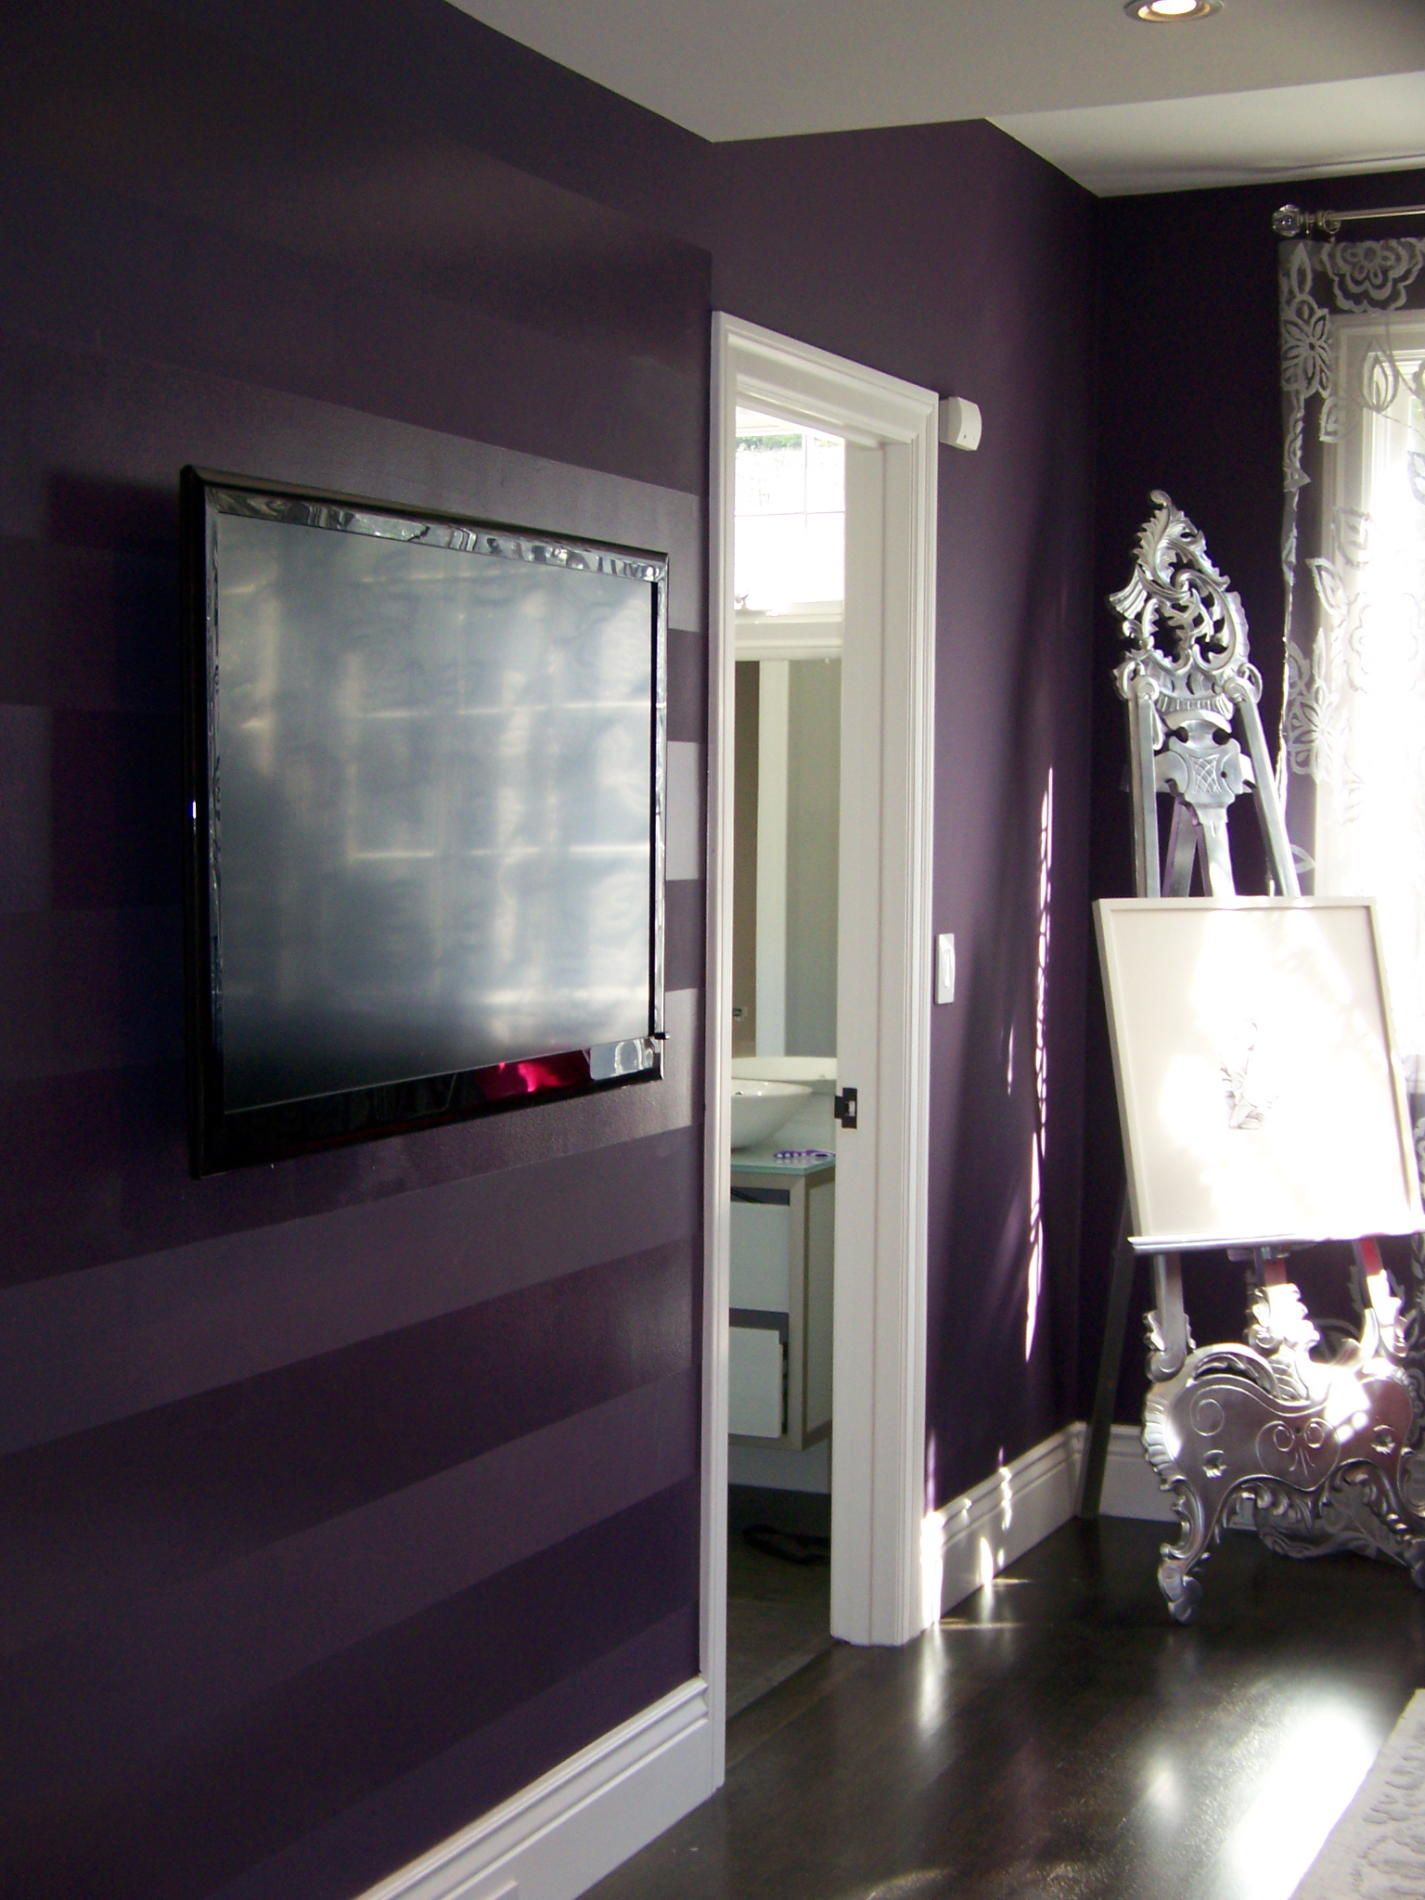 Matte High Gloss Deep Purple Walls This Would Look Awesome In Navy Too My Bedroom Yes